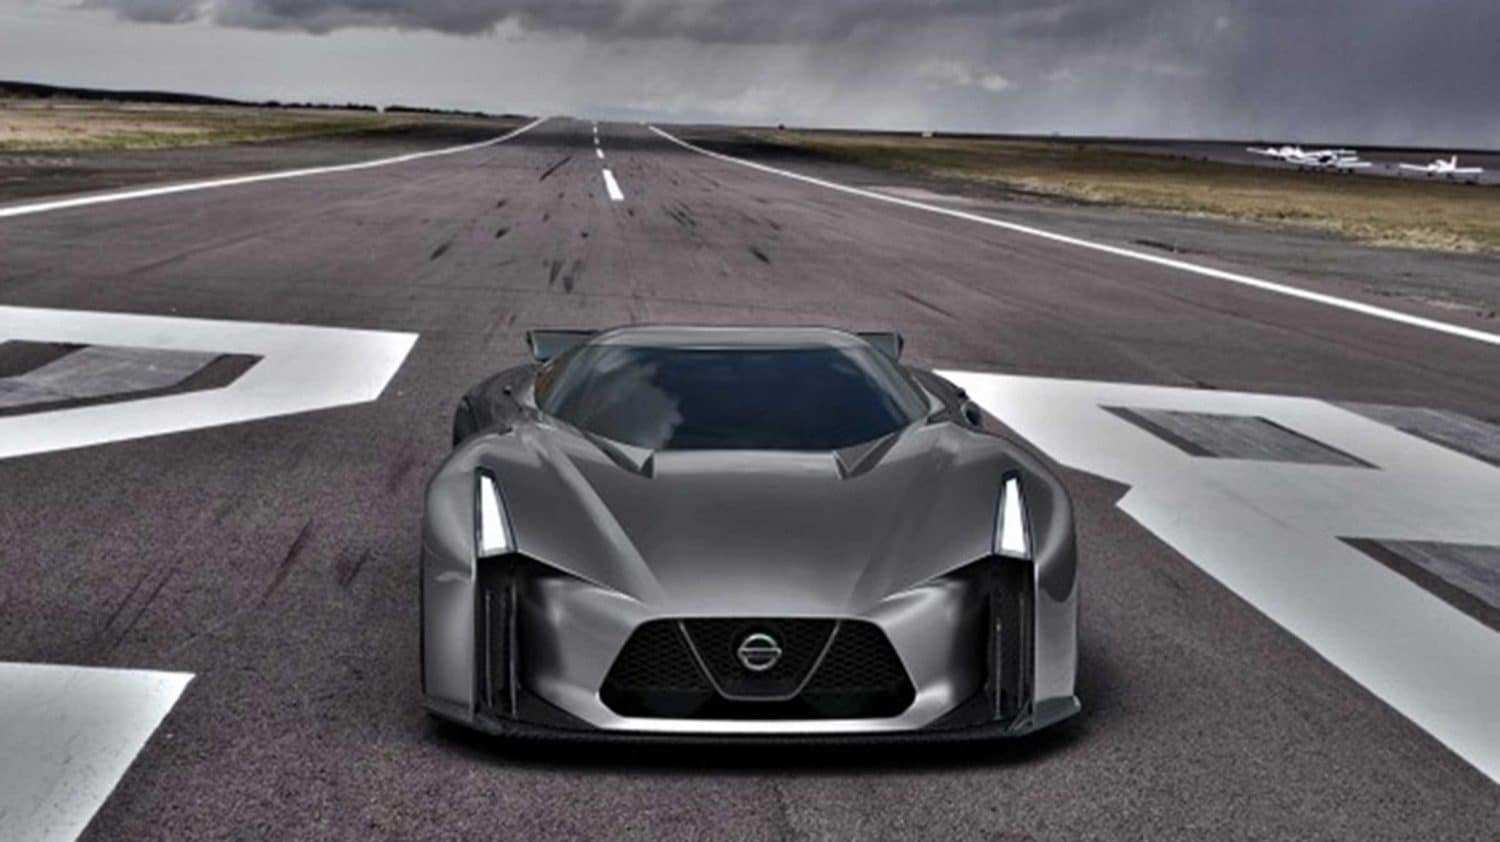 37 All New 2020 Nissan Gran Turismo Research New by 2020 Nissan Gran Turismo